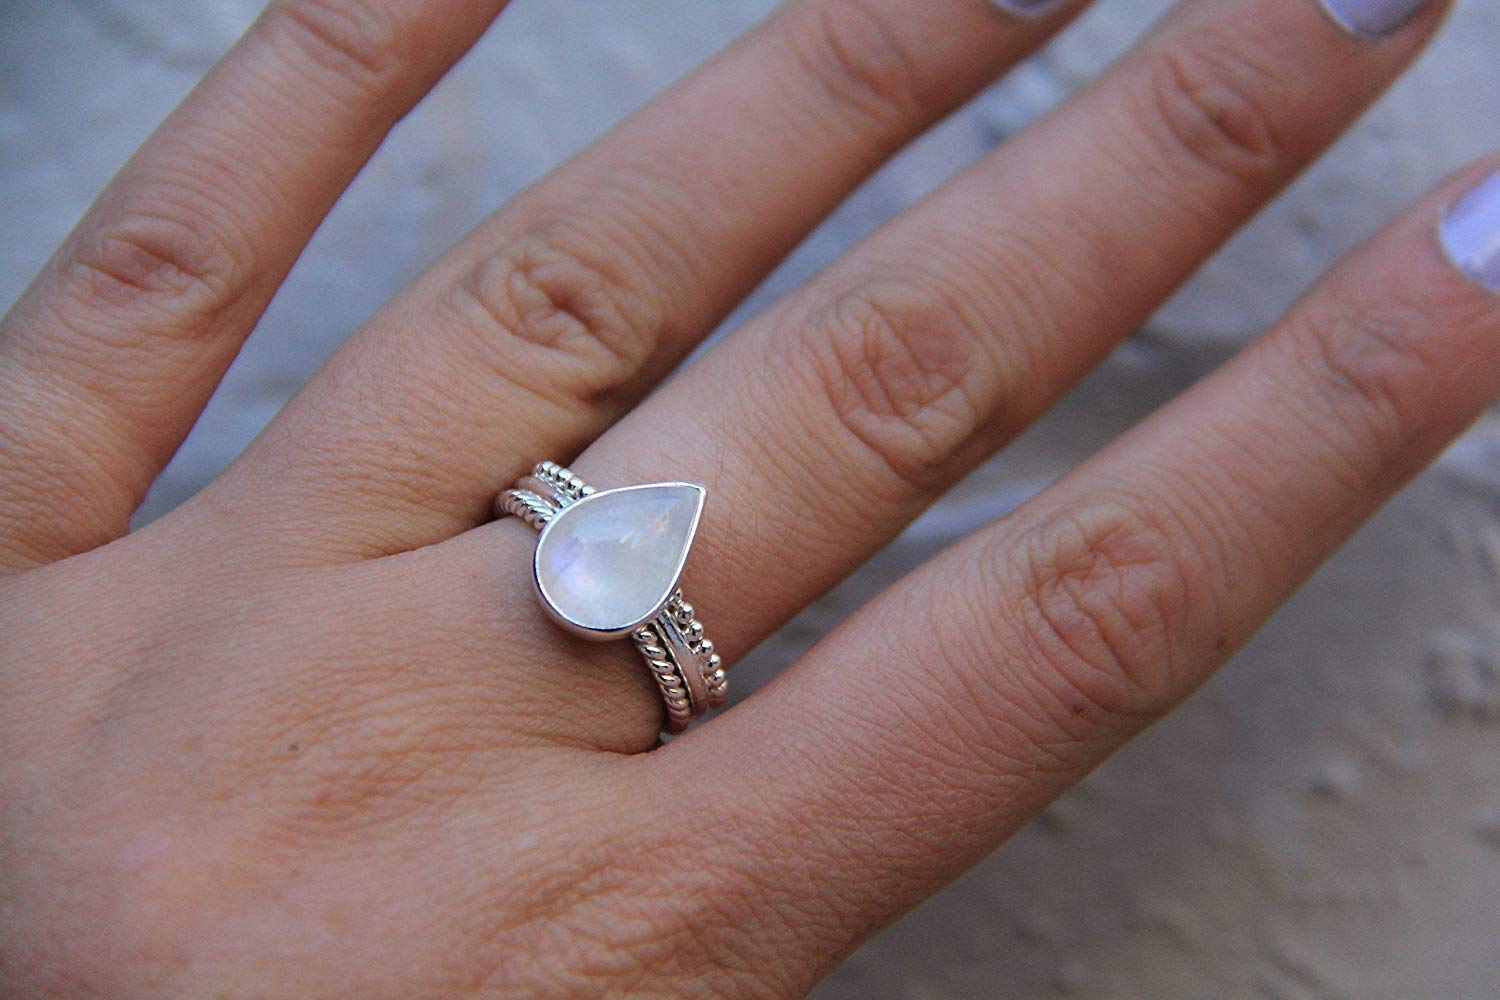 Designer Silver Band Ring, Rainbow Moonstone Womens Ring, Natural Healing Moonstone Ring, Solid 925 Sterling Silver Ring, Big Solitaire Bohemian Jewelry, Gift for Her, Teardrop Moonstone Ring All Size